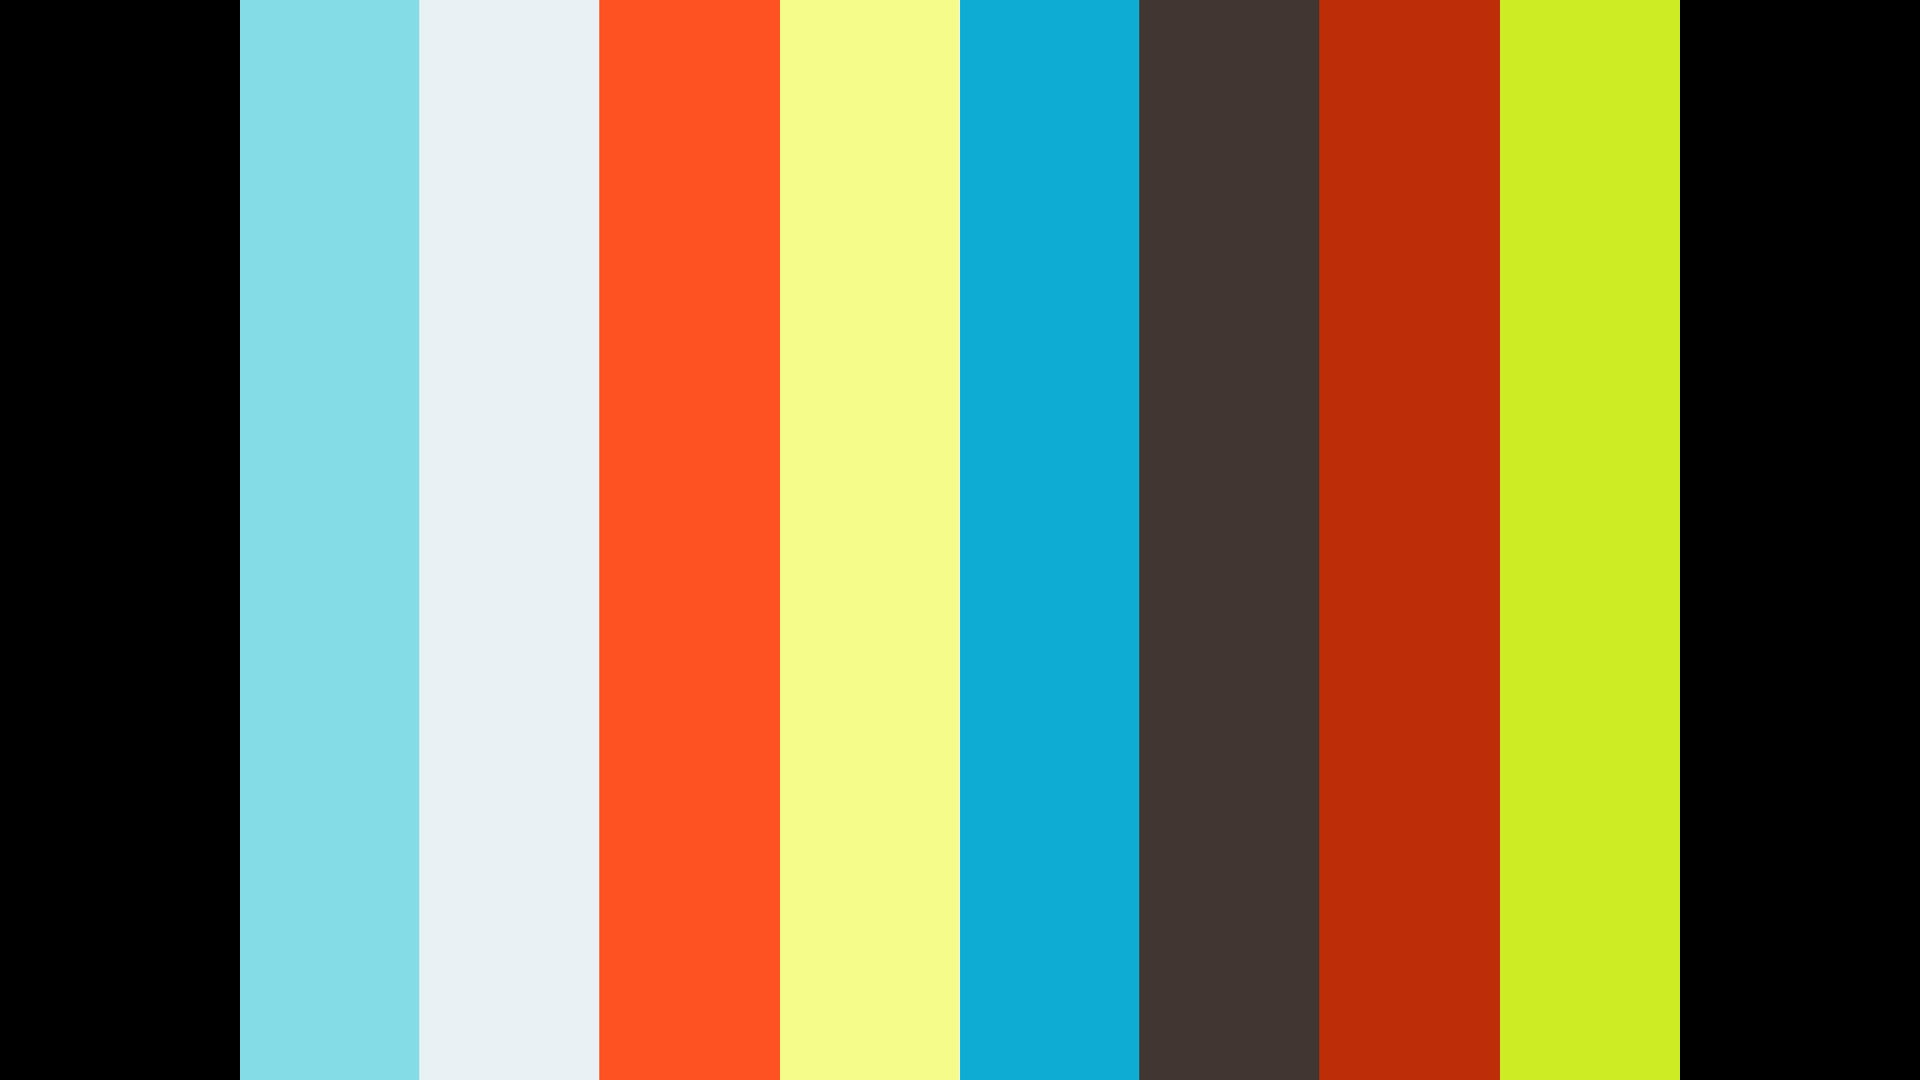 Talk by Katja Diefenbach [1, 2]